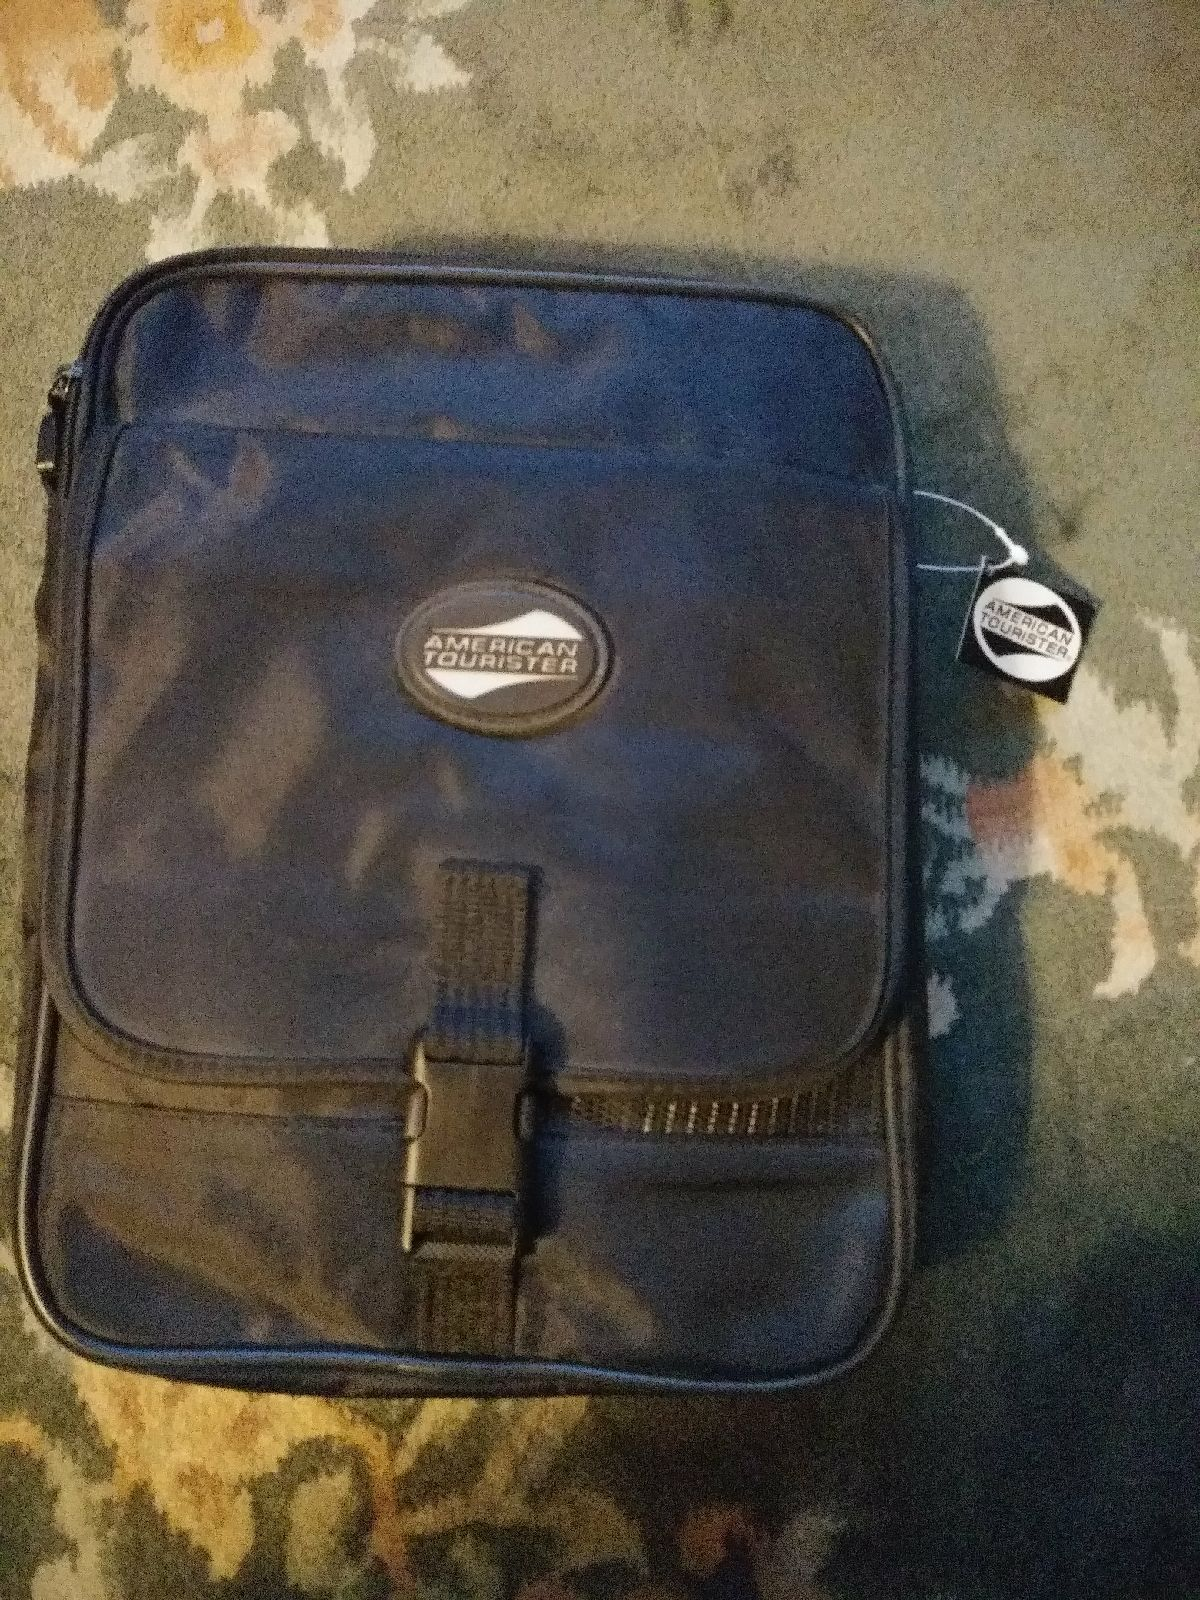 American Tourister Fold-A-Way Suitcase